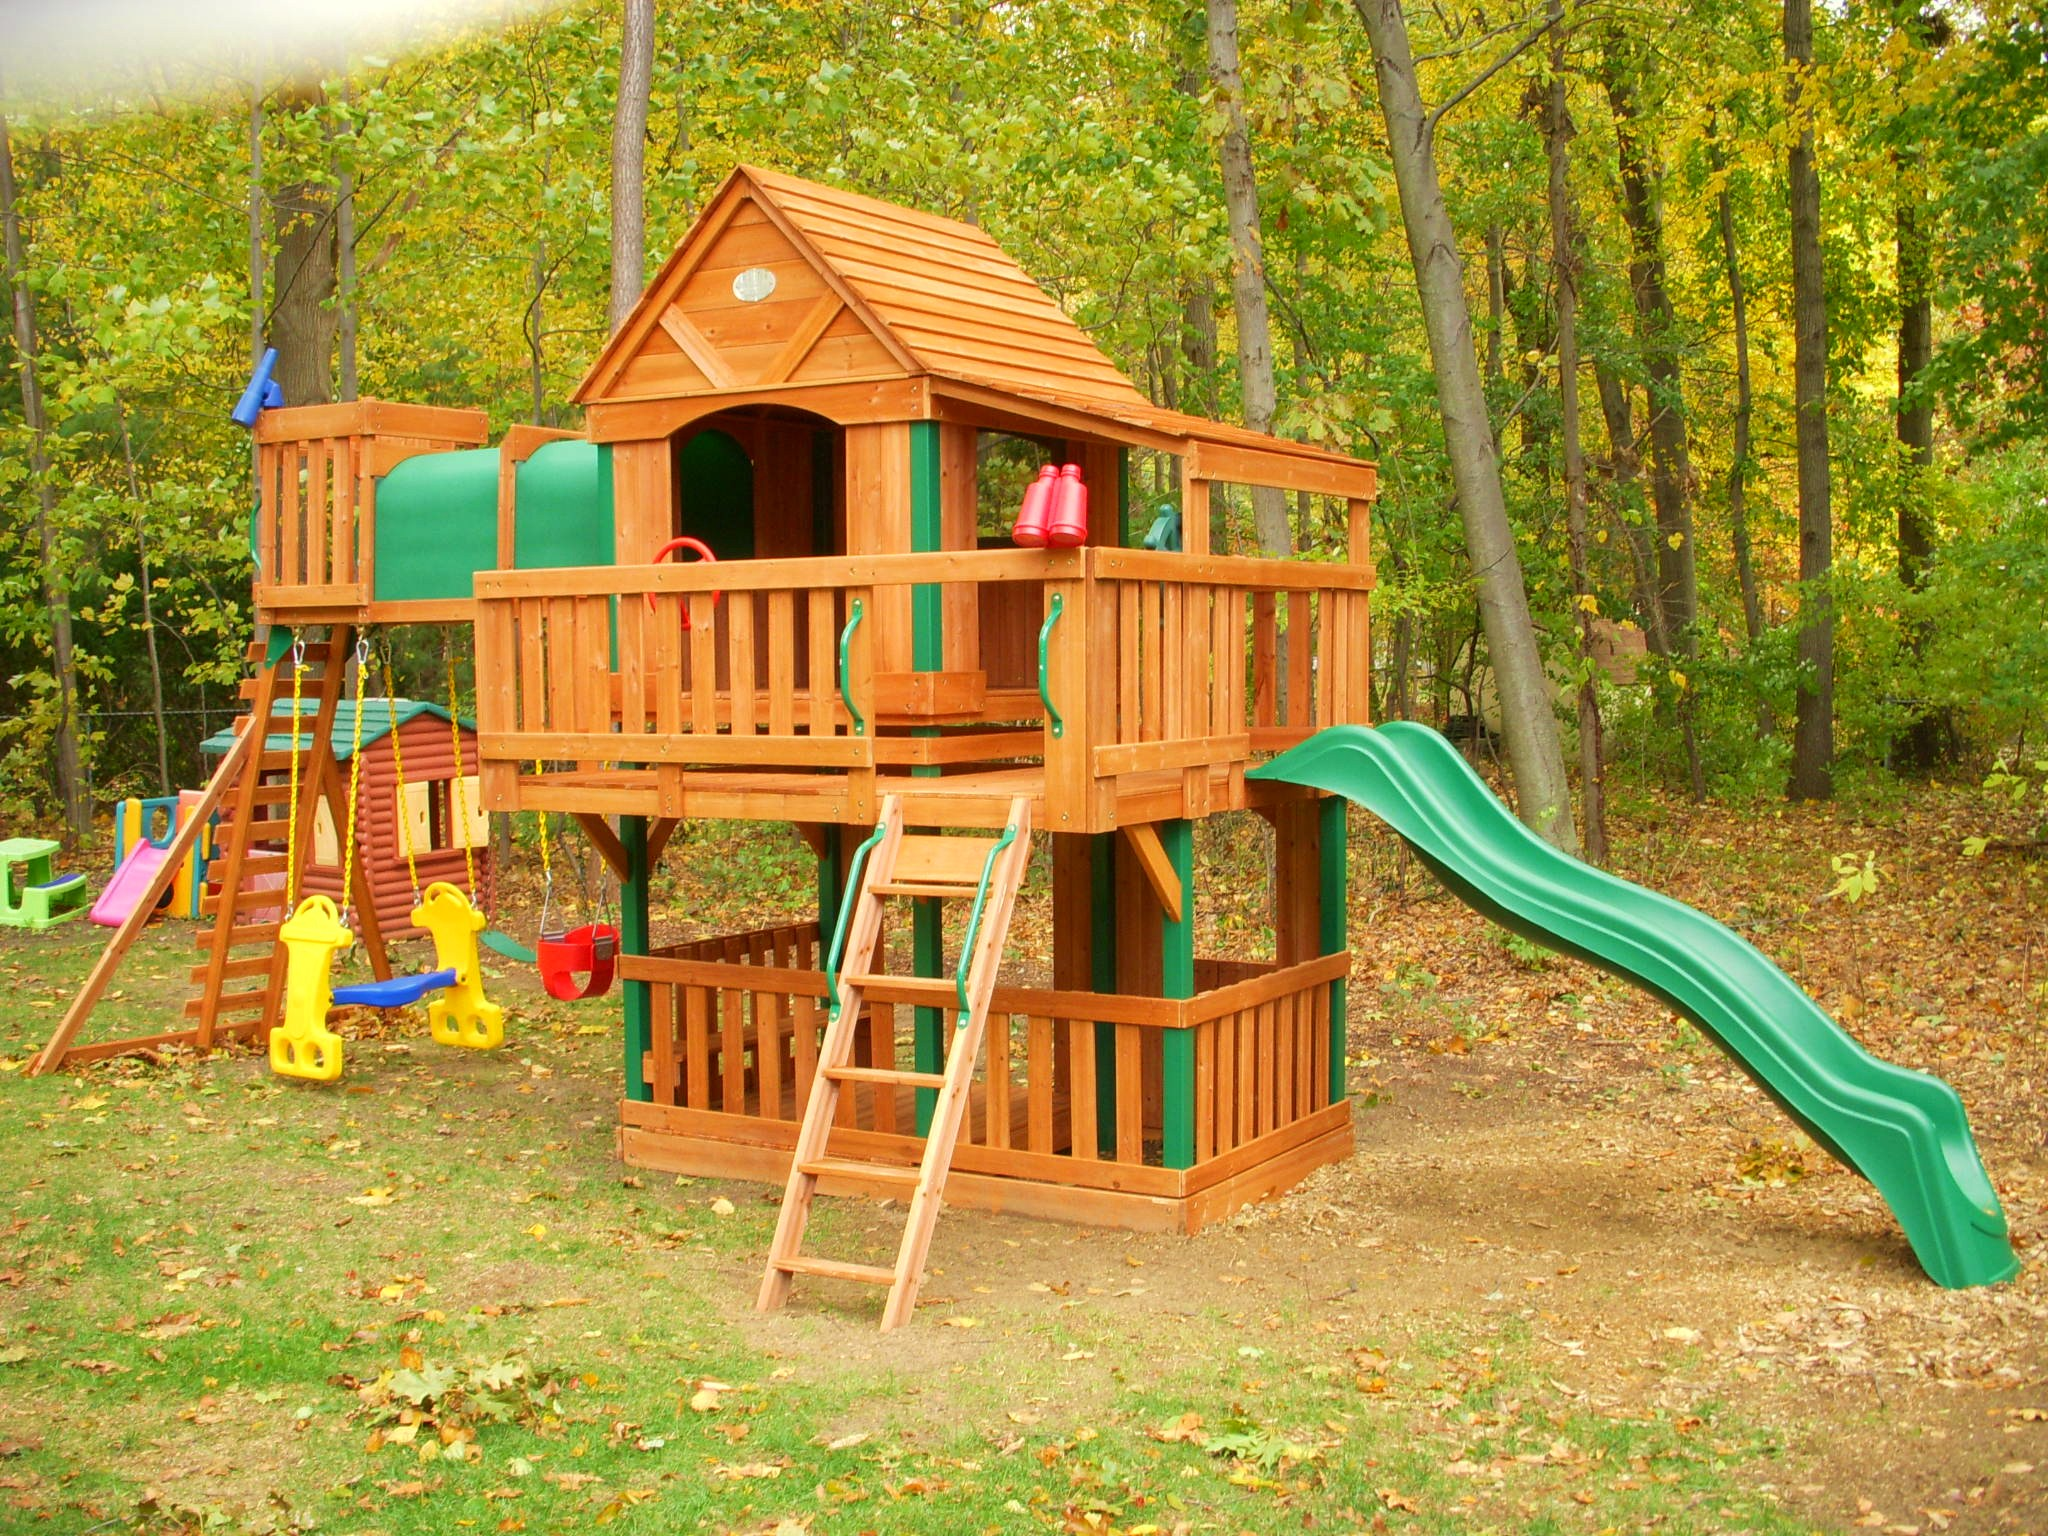 sets supple to dk summit panorama swing video from gallery lifetime playground shelbyville set costco smothery famed in cedar playset